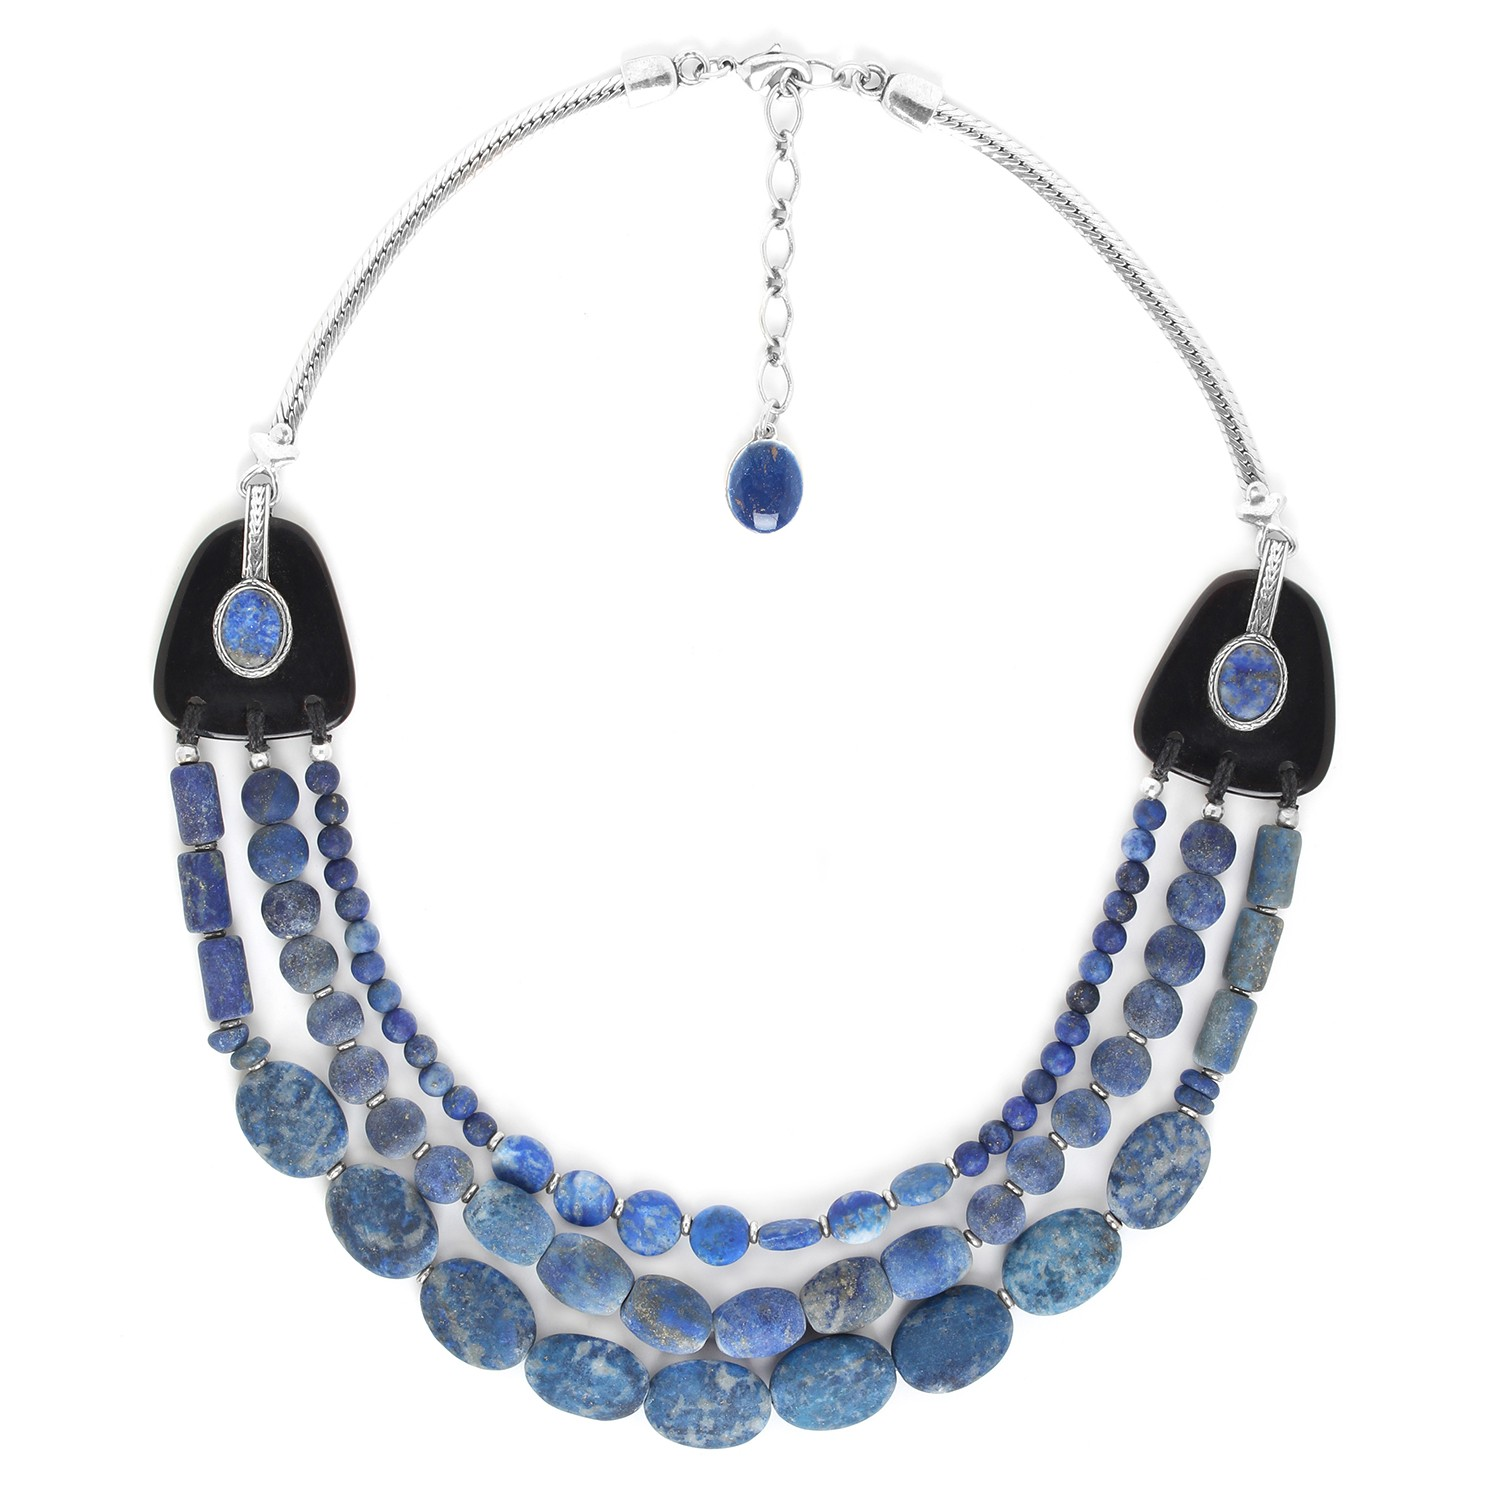 KABYLIE LE collier